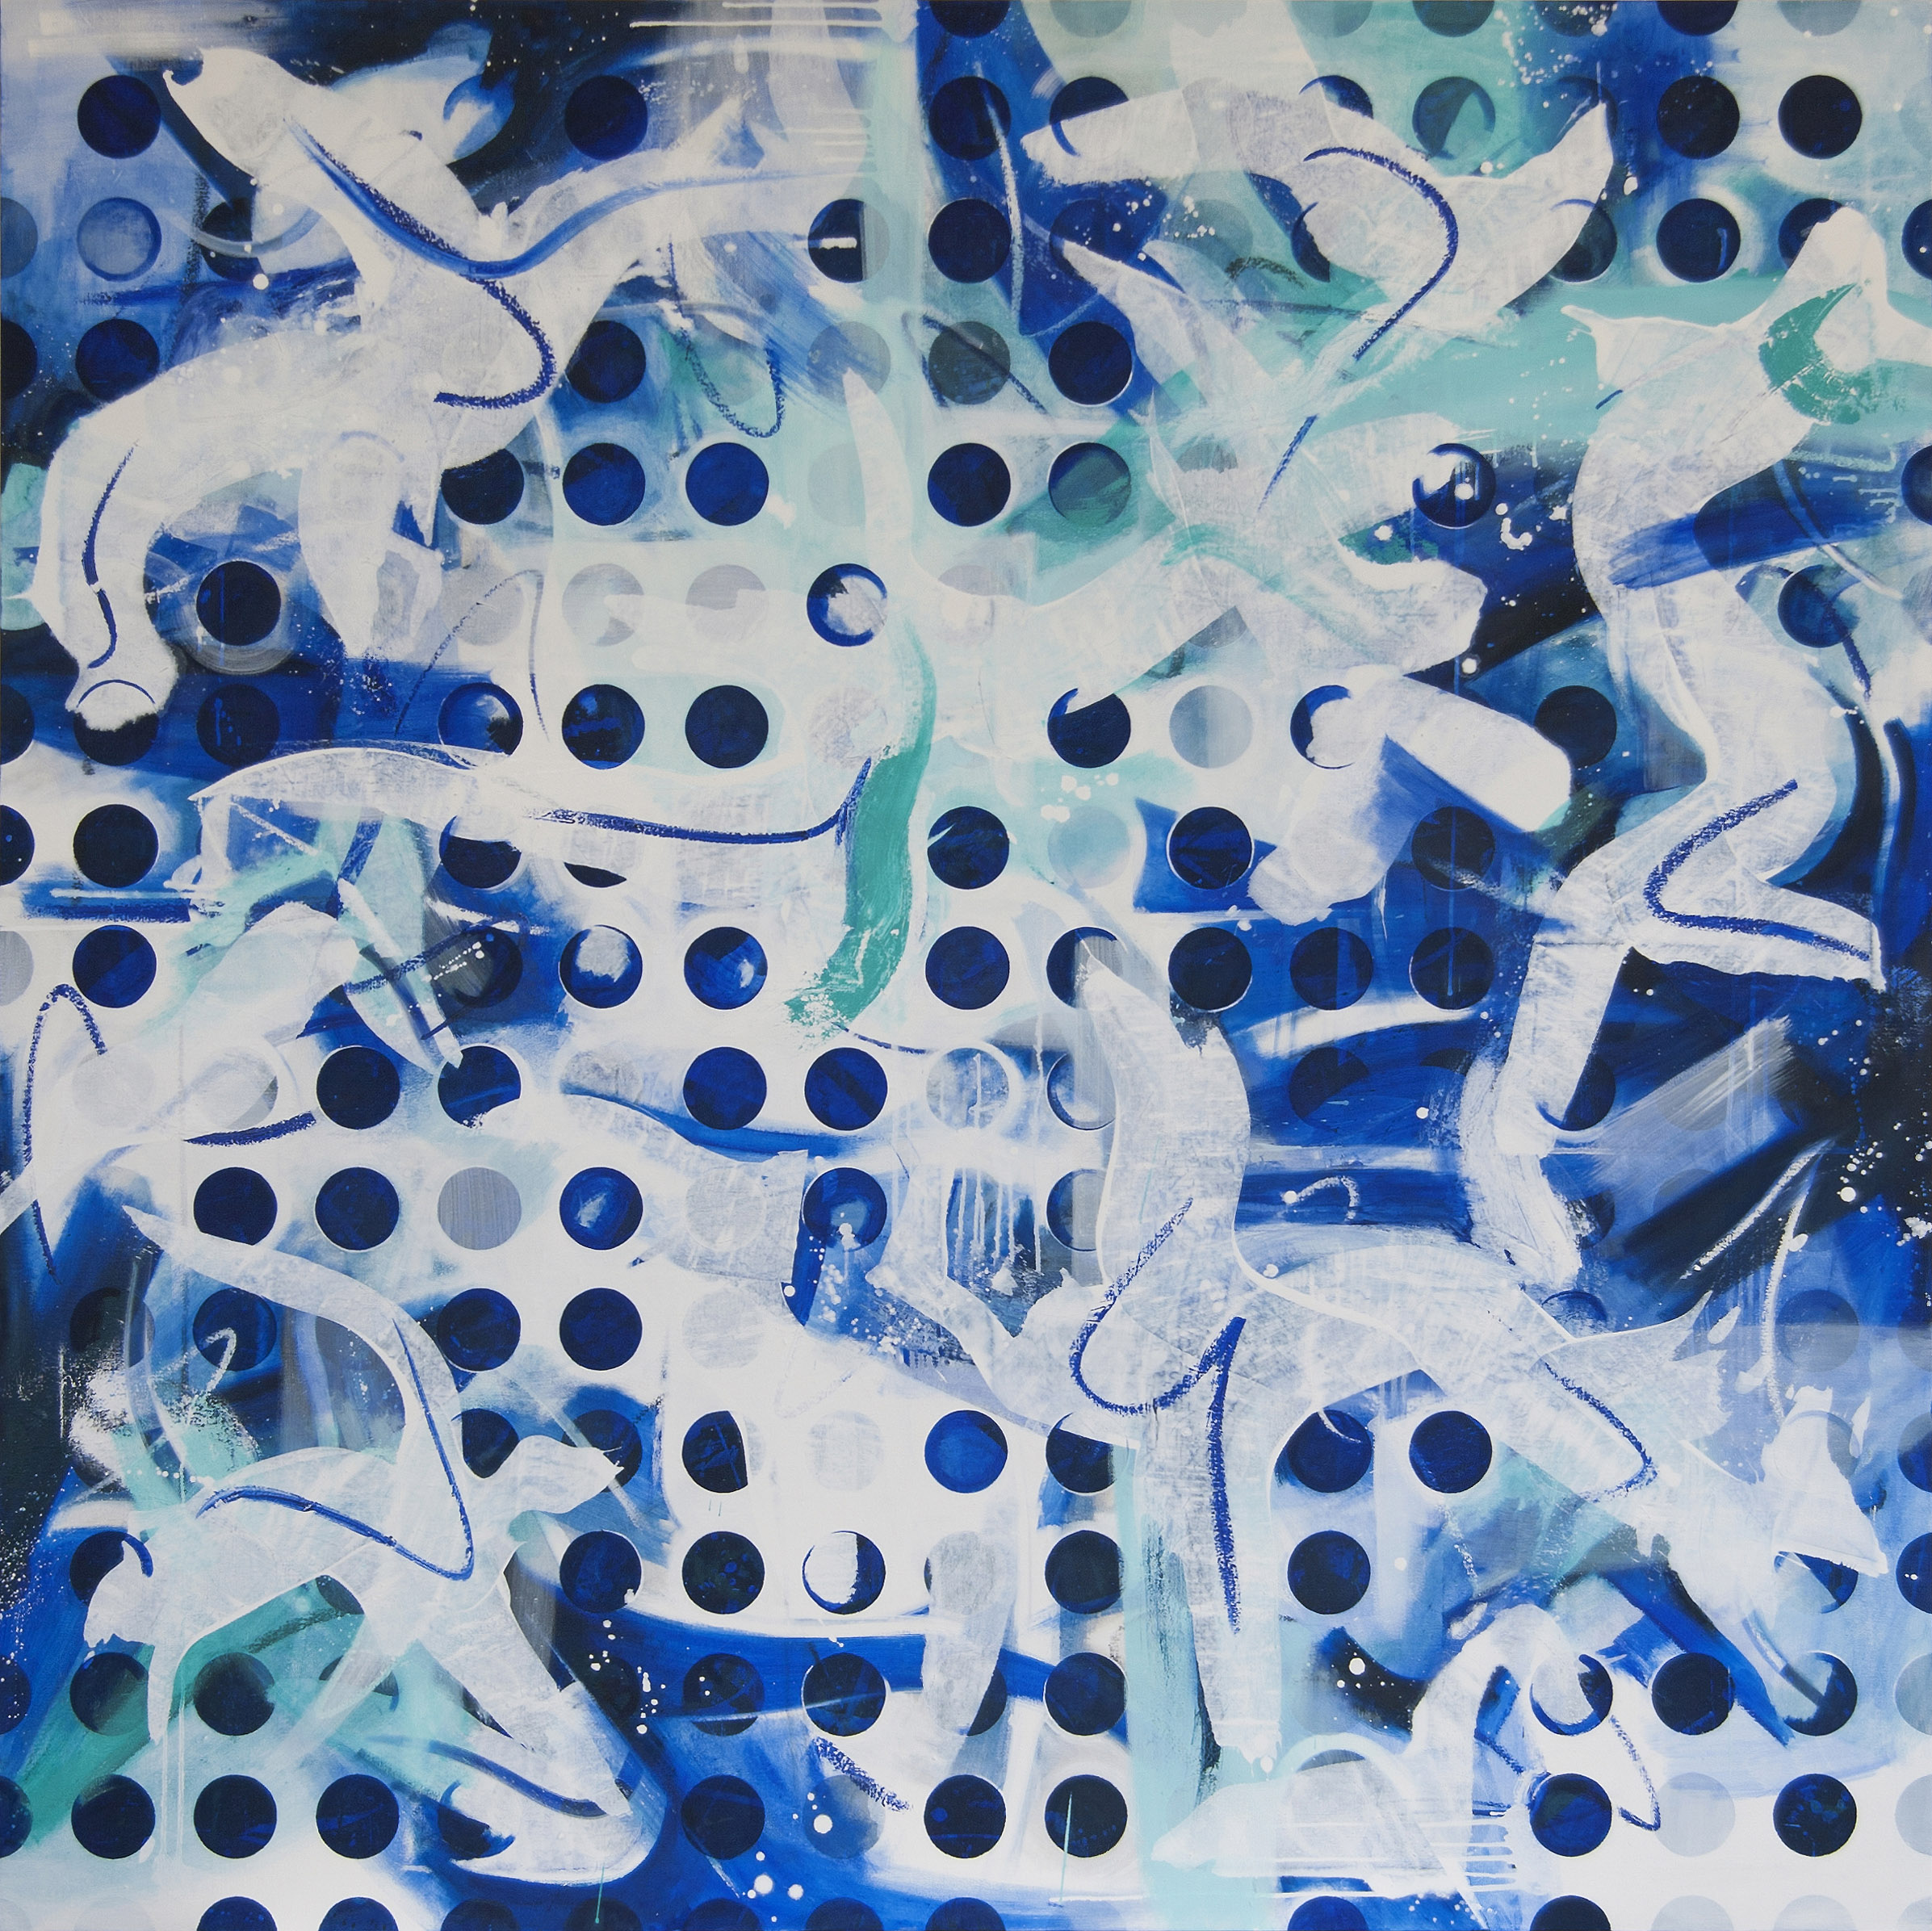 Espacio Ultramar, 2014, Acryl and oil on canvas, 170 x 170 cm.